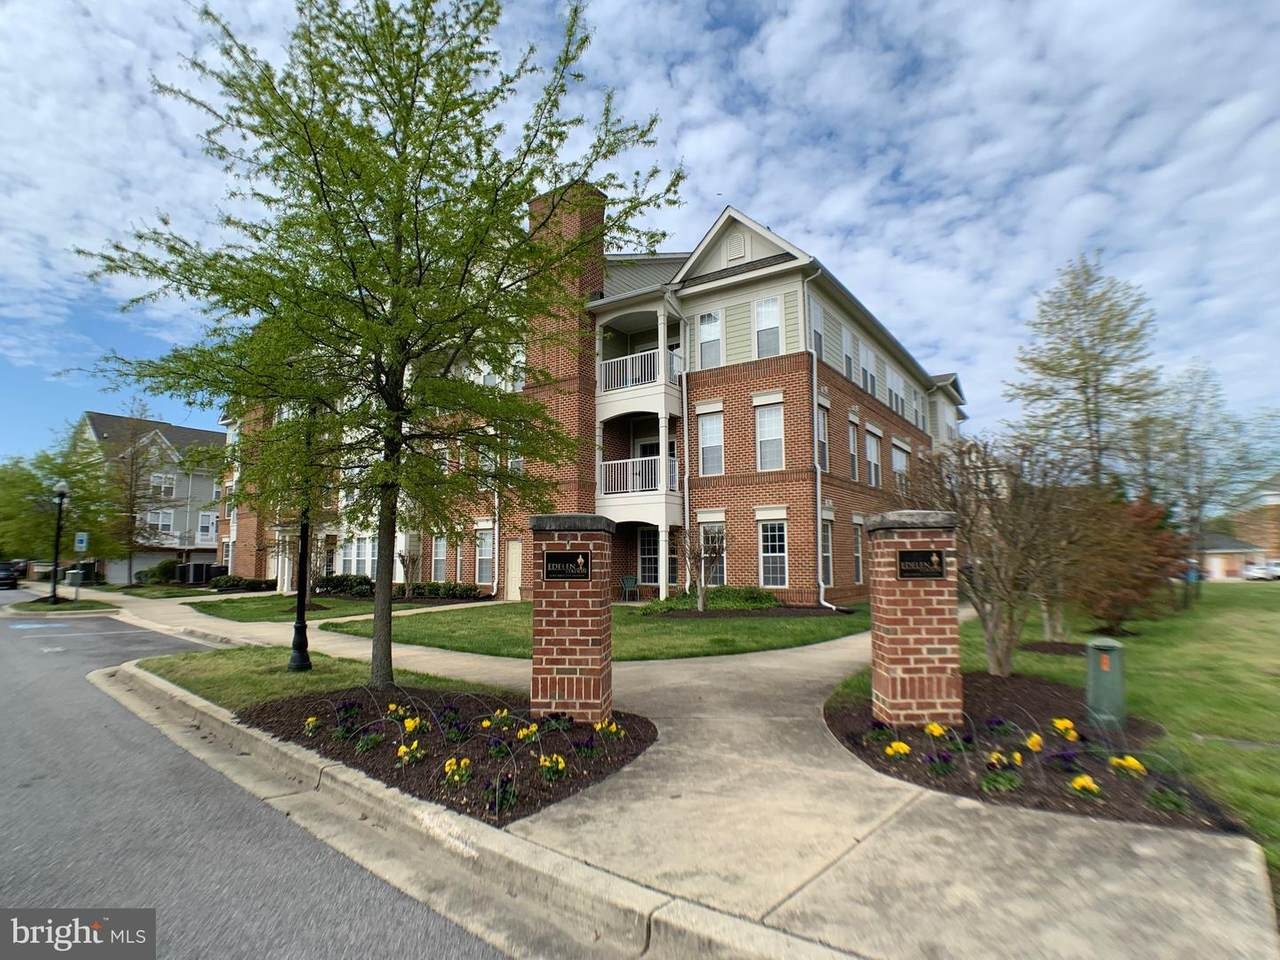 200 Edelen Station Place - Photo 1